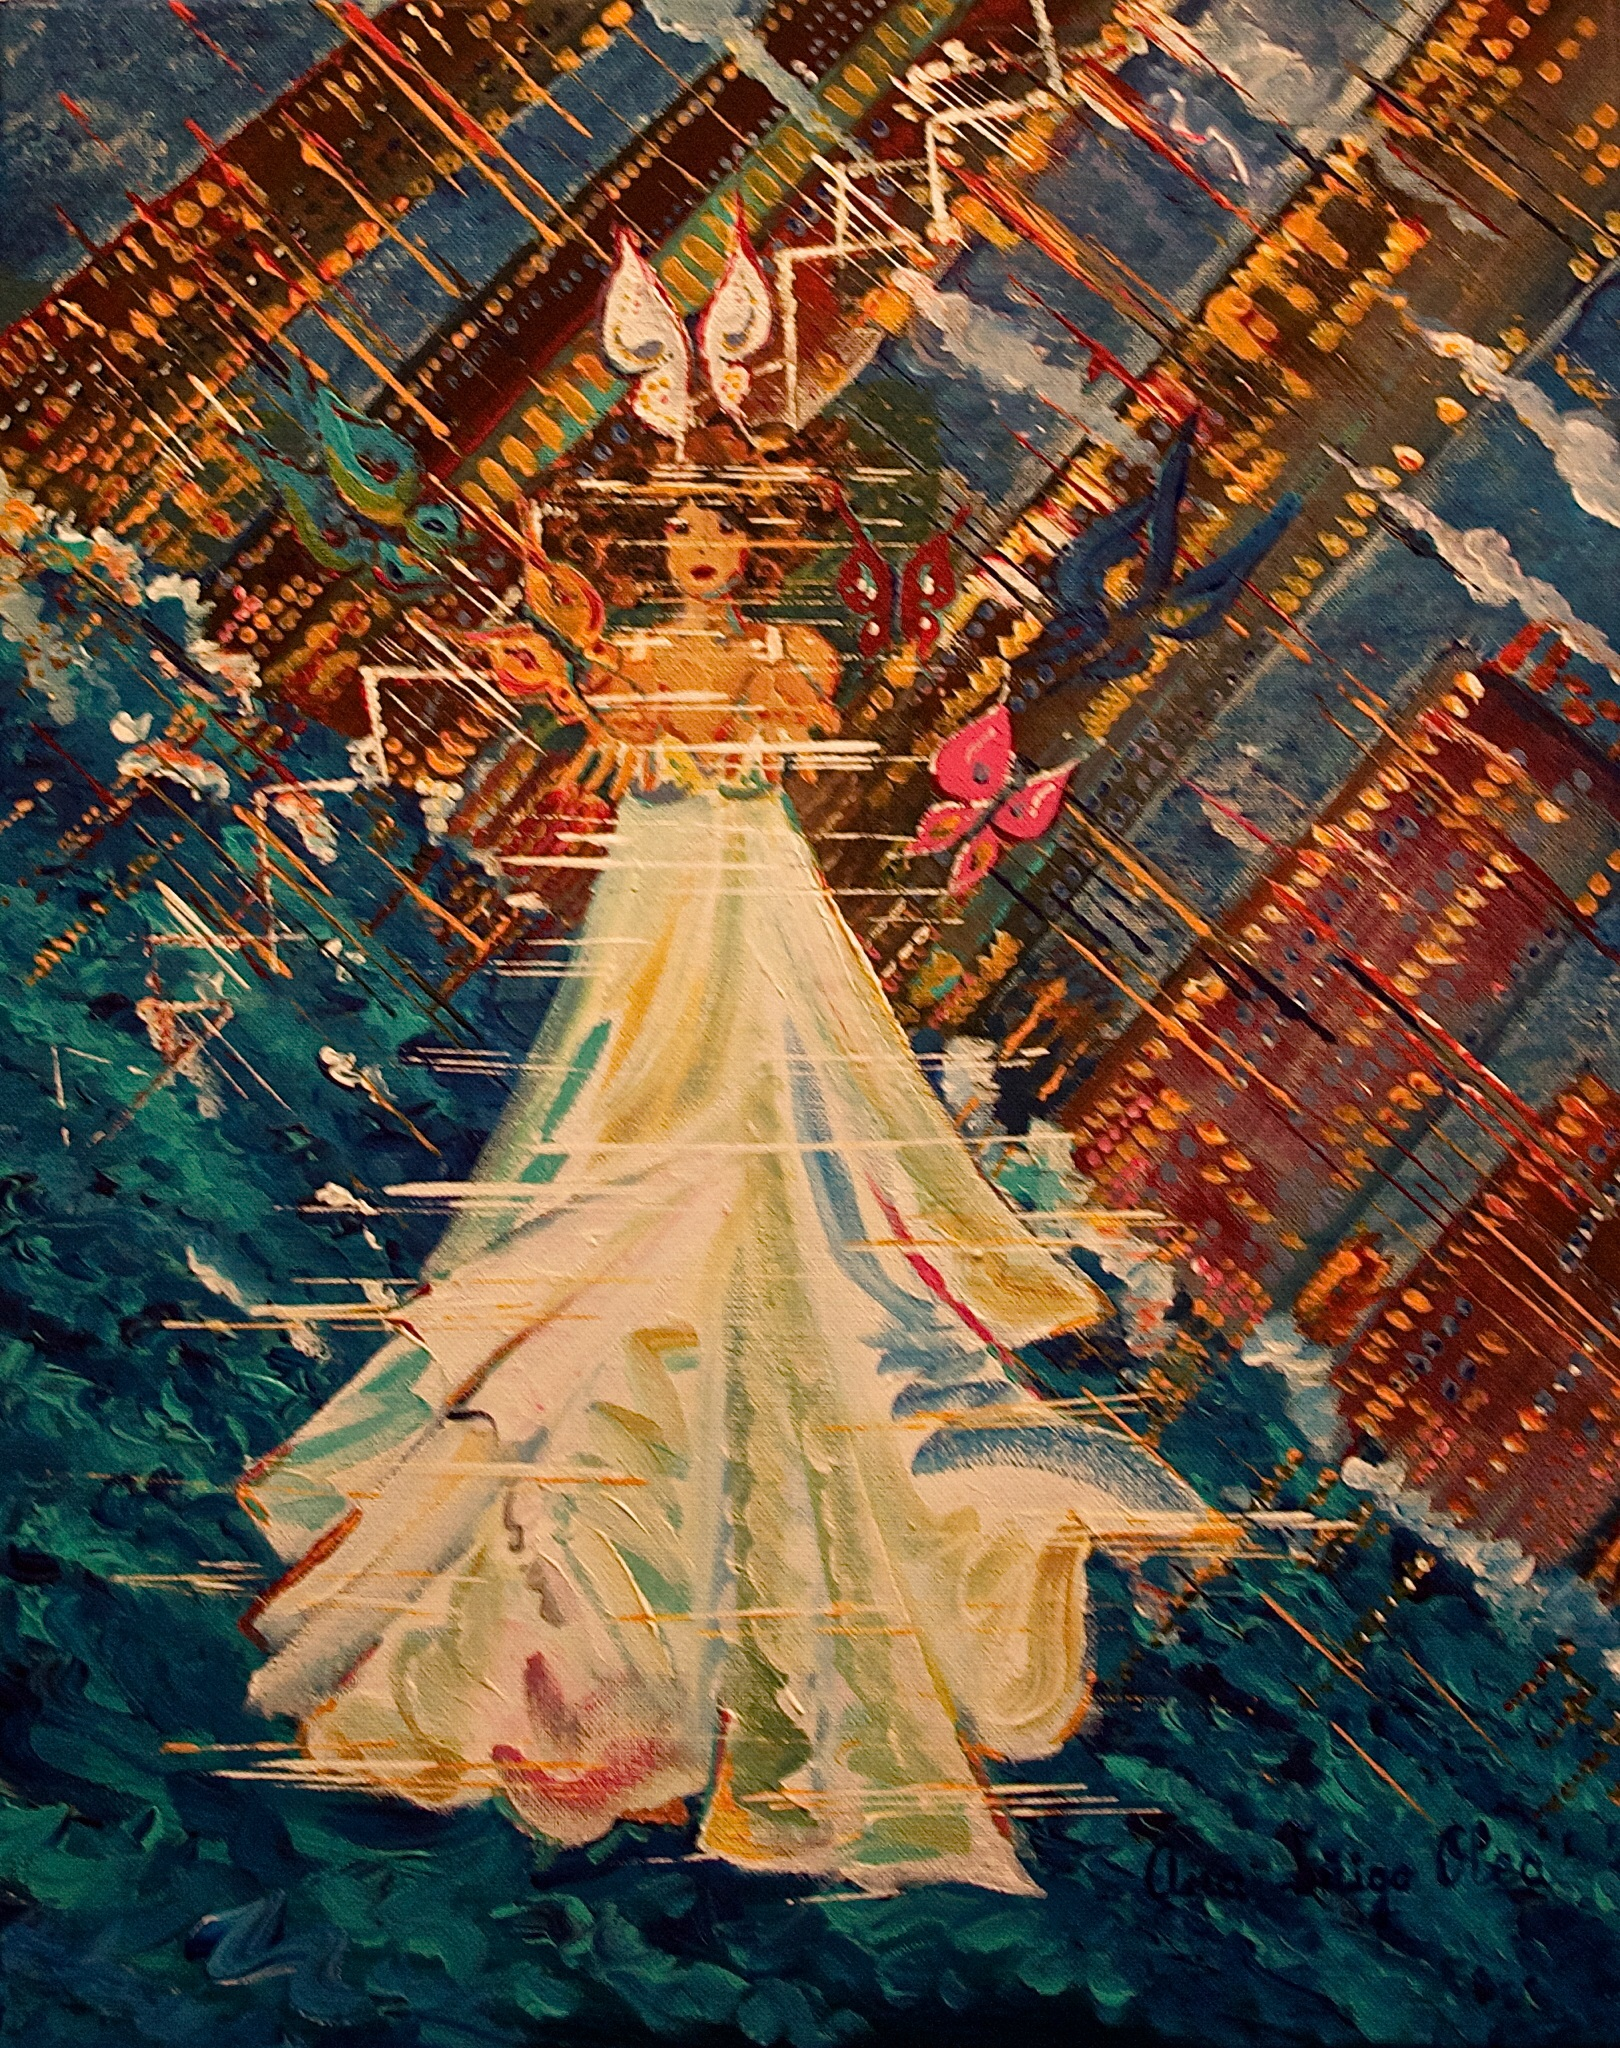 seeking reality.  2011. Hong Kong  70x50cm. Mixed media